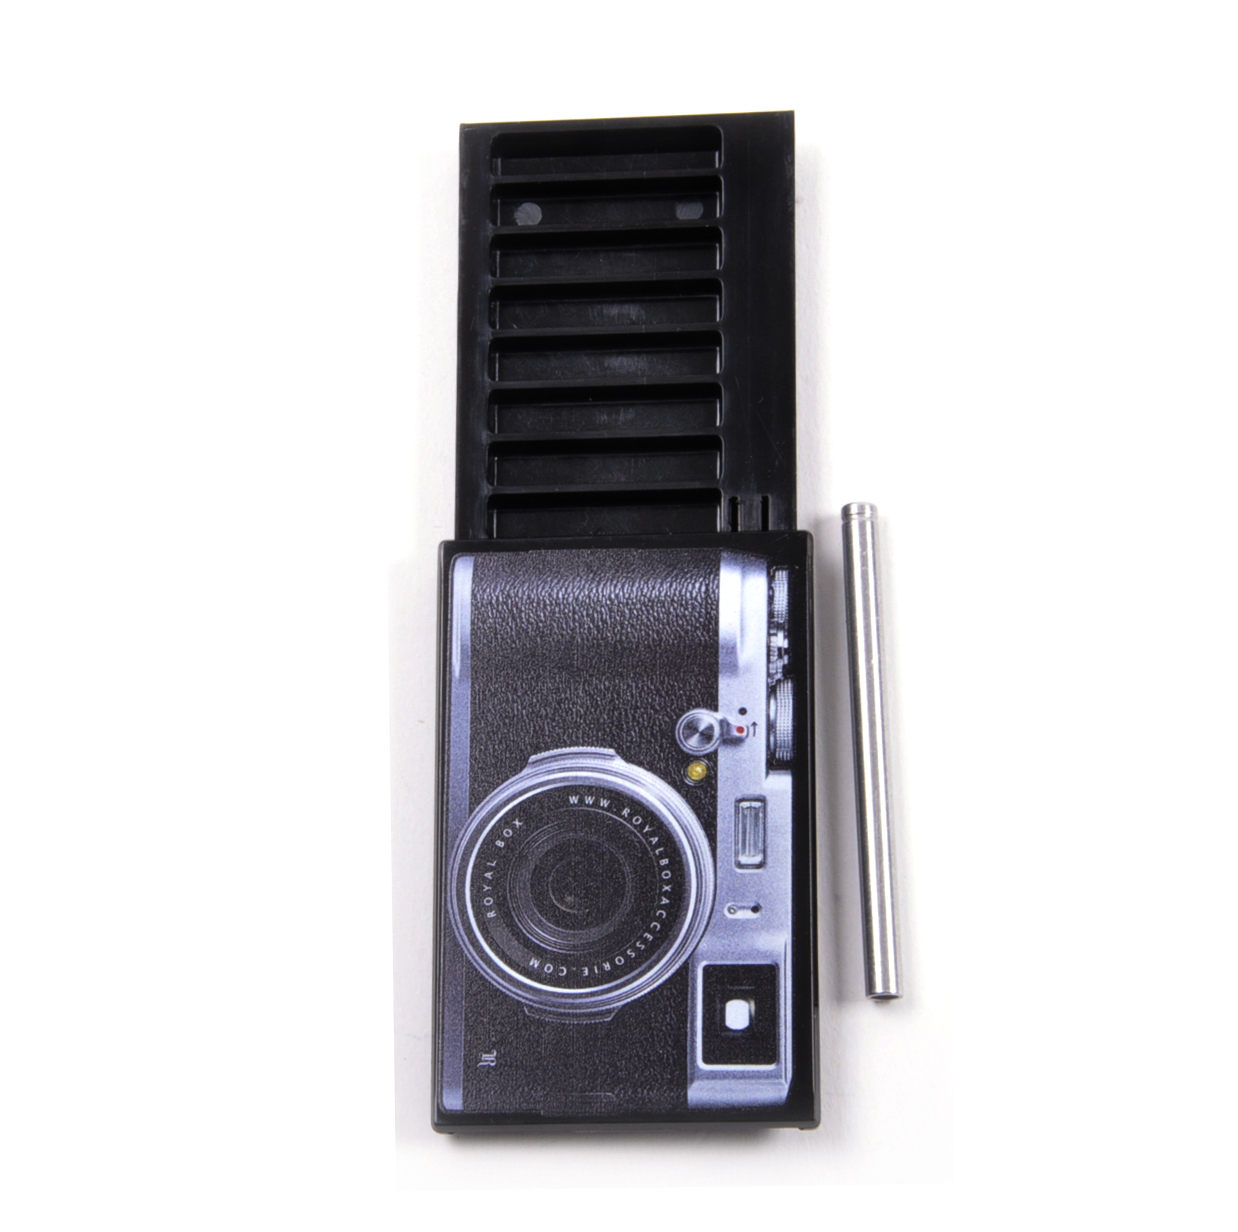 Camera Edition - Black Royal Box with Steel Pipe - Sniffing, Snorting,  Snuff Set